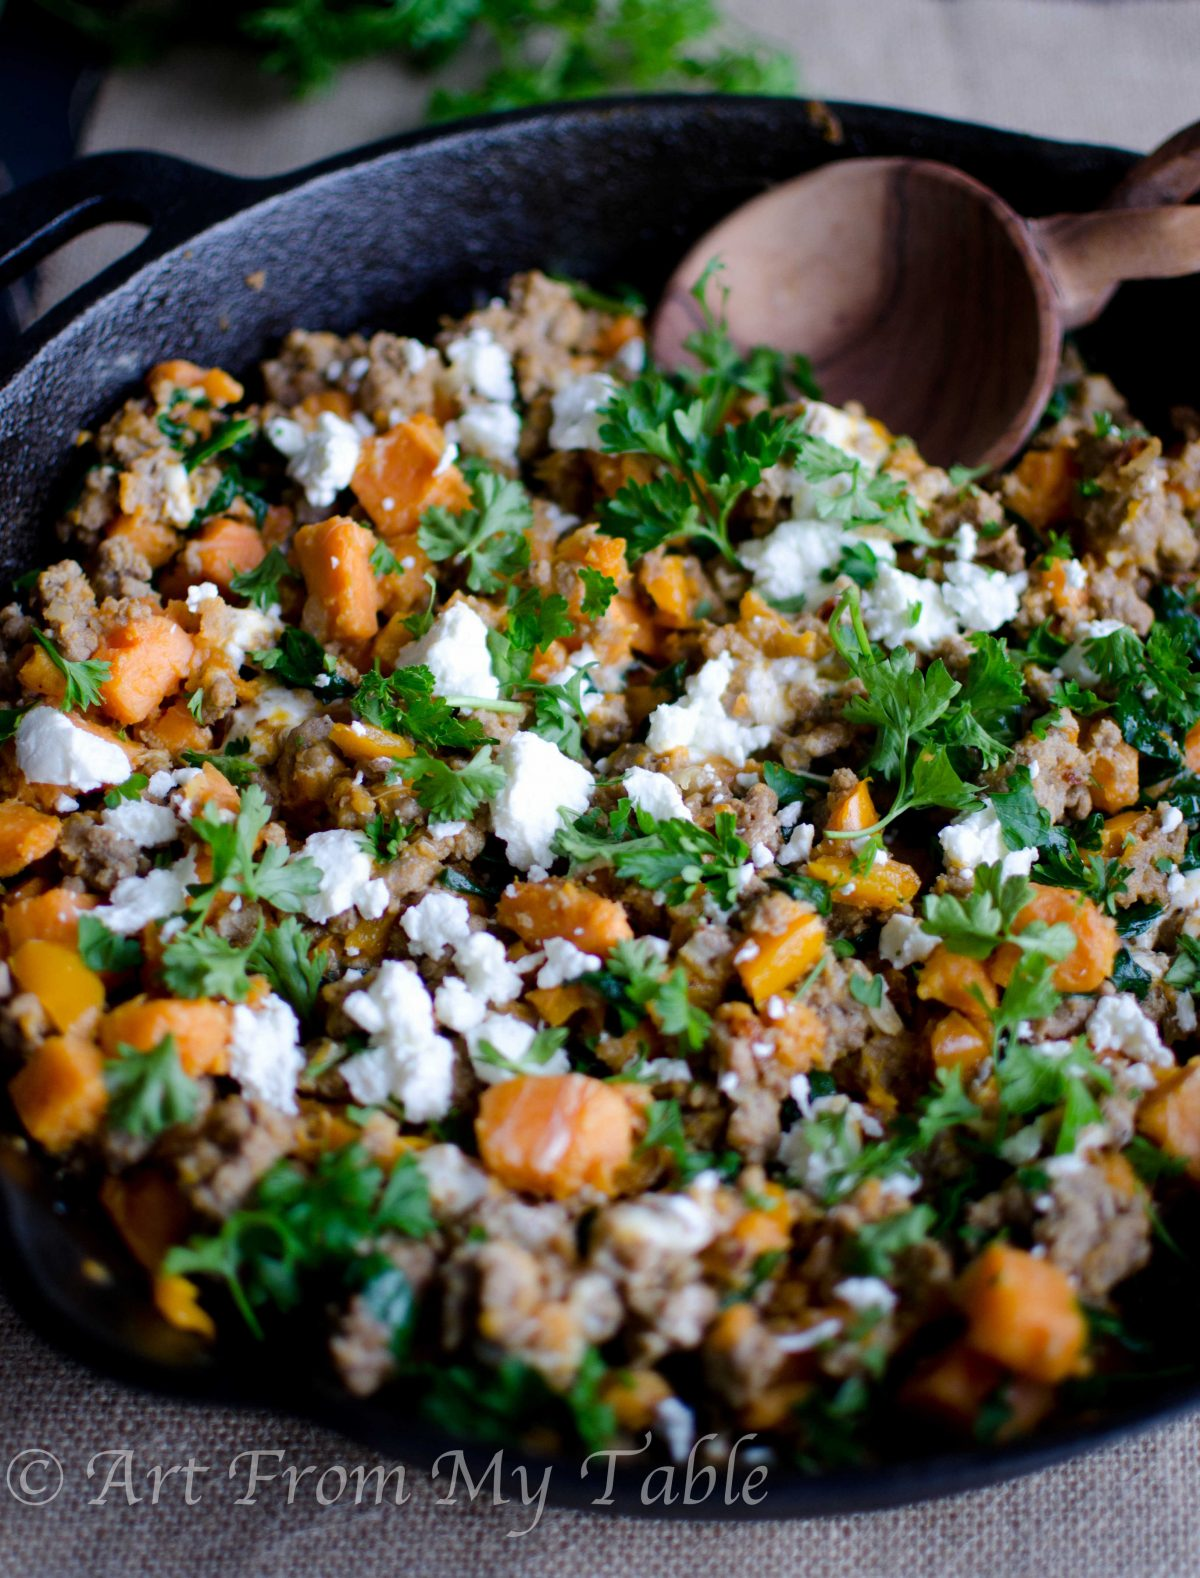 Turkey skillet dinner is a cast iron skillet full of ground turkey, kale, sweet potato chunks and goat cheese garnished with fresh parsley